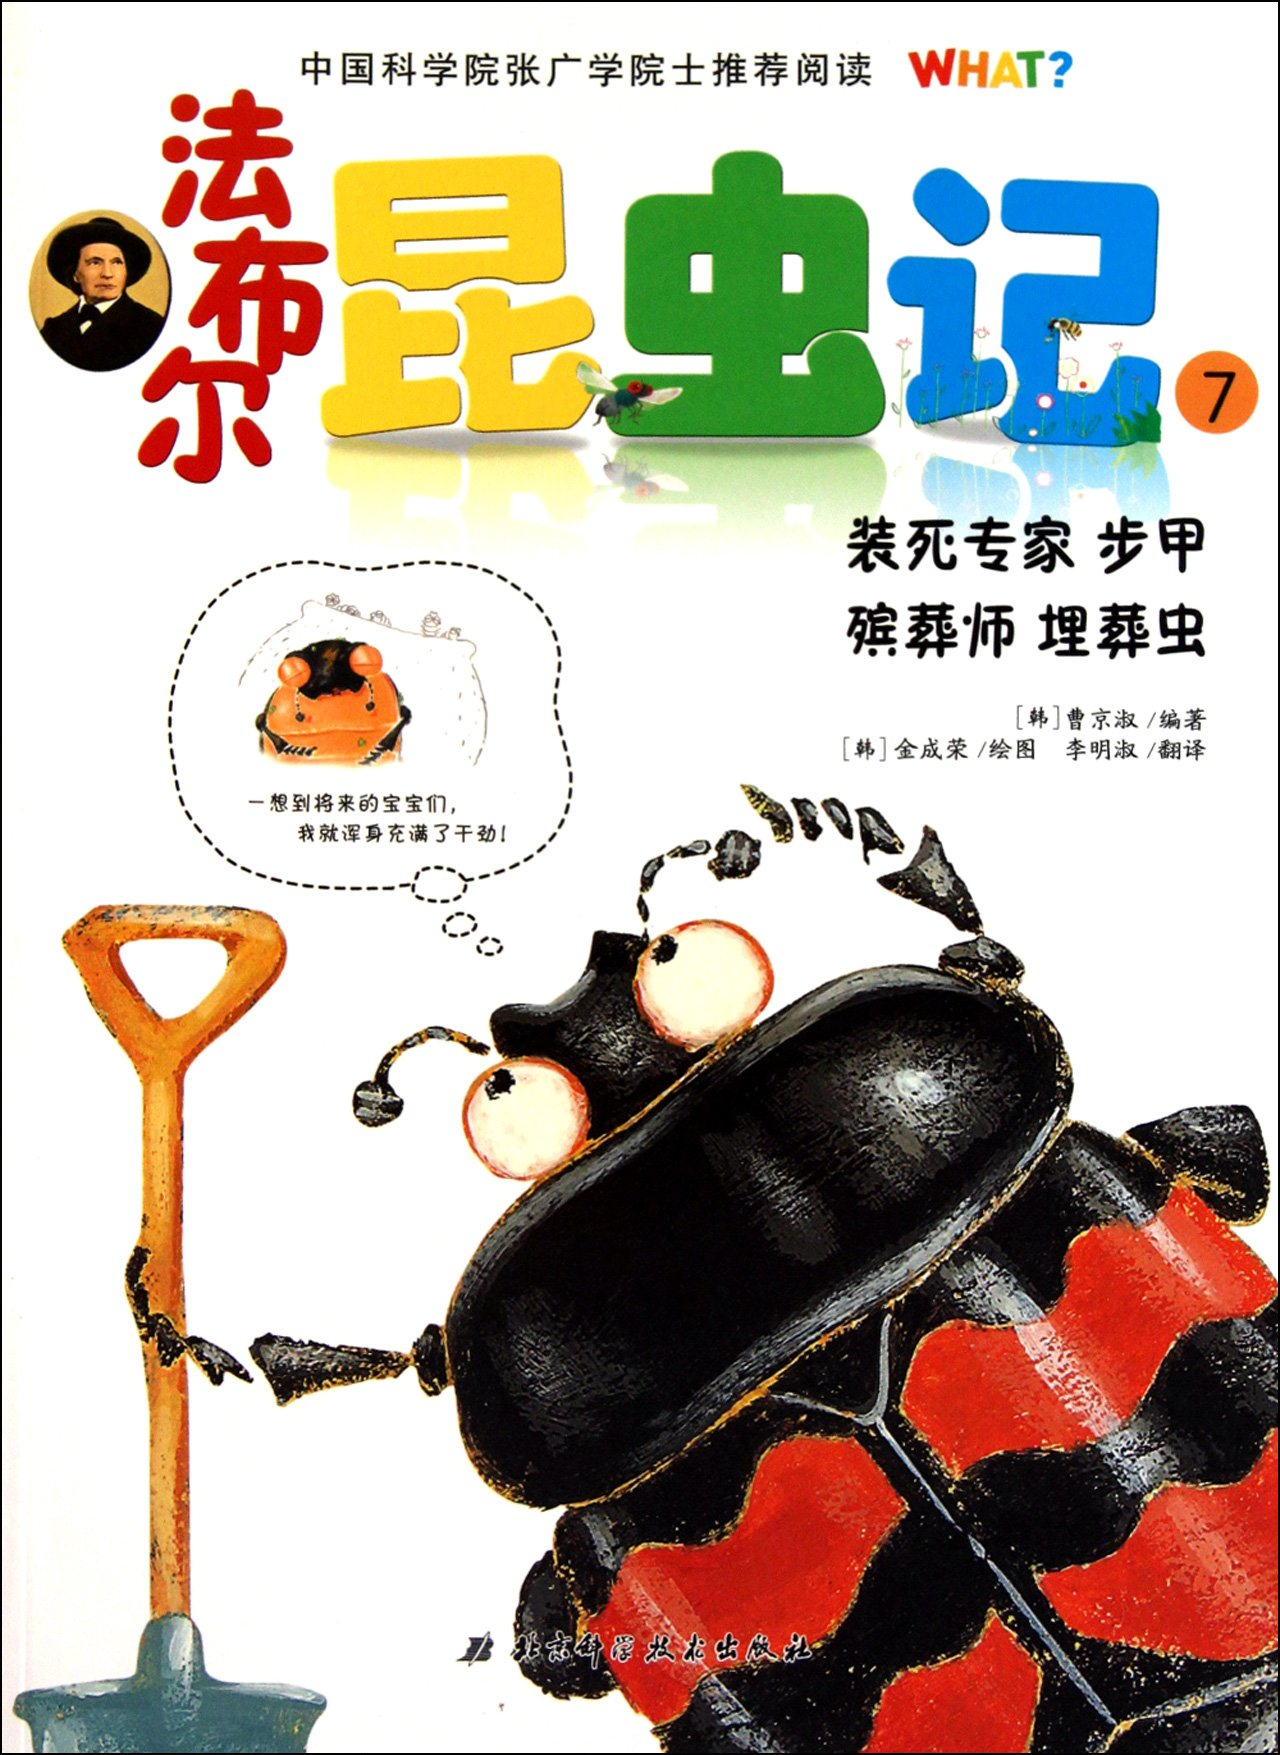 Download Sham Dead Expert  Carabidae Mortician Burying Beetle - The Records about Insects  by Jean Henri Fabre - 7 (Chinese Edition) PDF